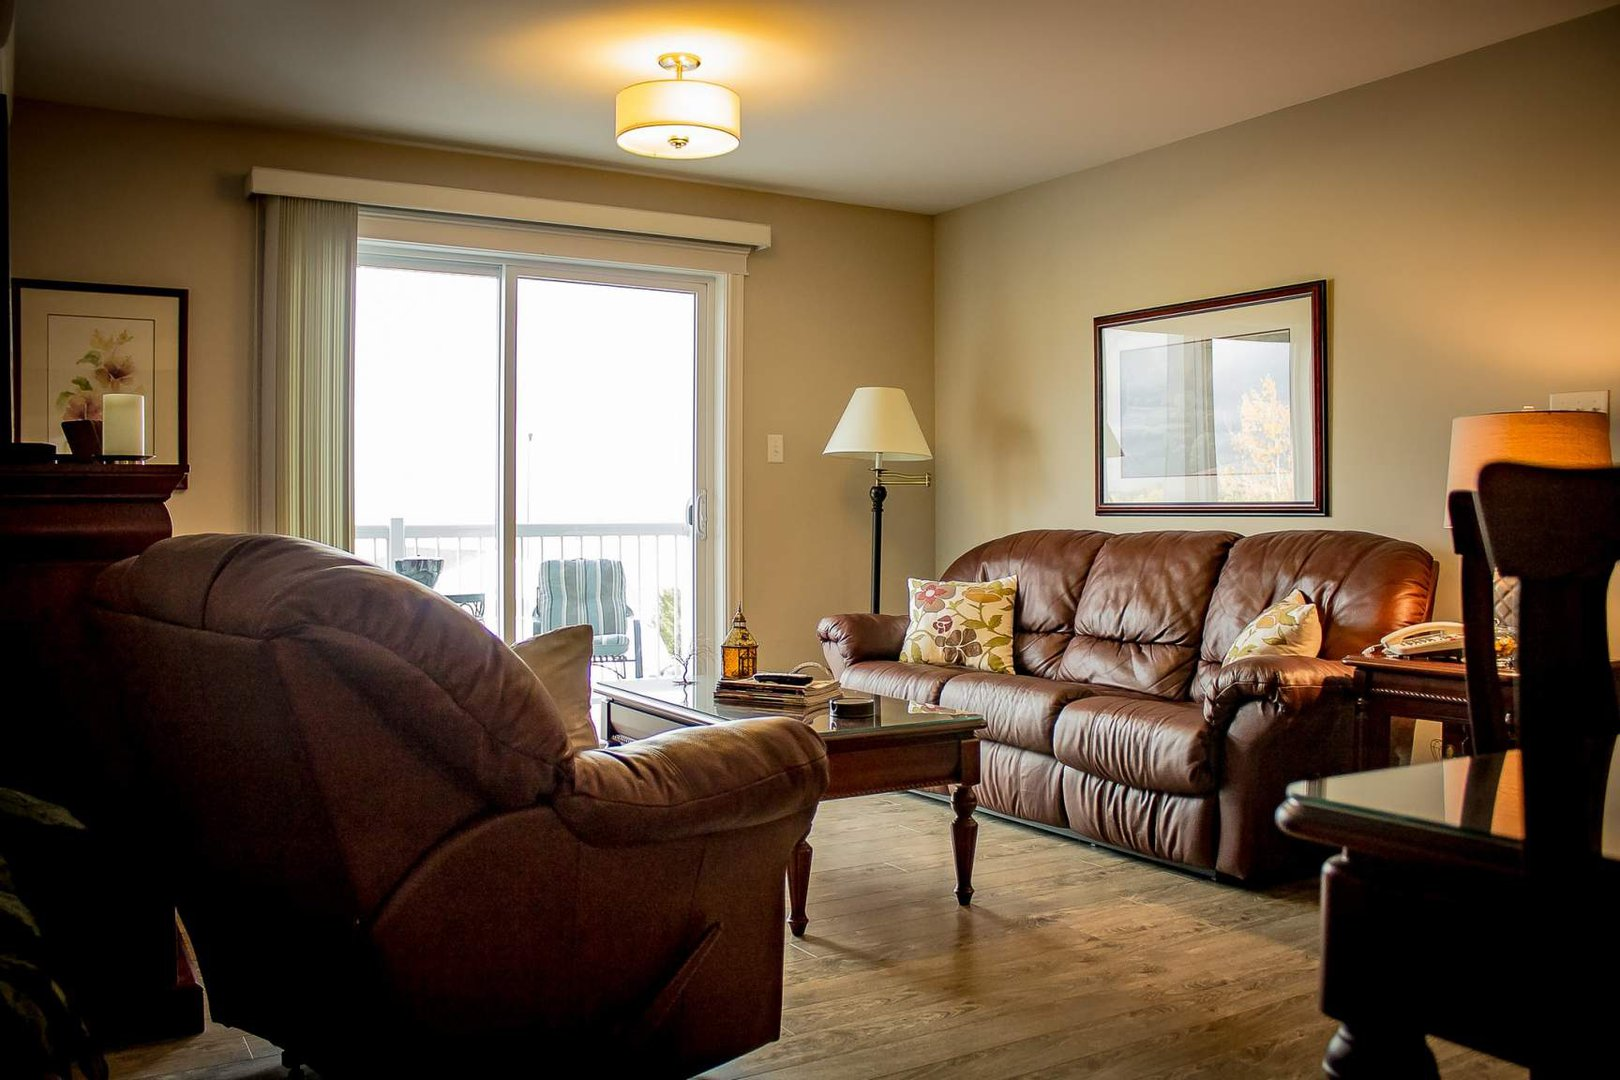 Mid-Rise-Apartment for rent at 747 Coverdale Road, Moncton, NB. This is the living room with natural light.